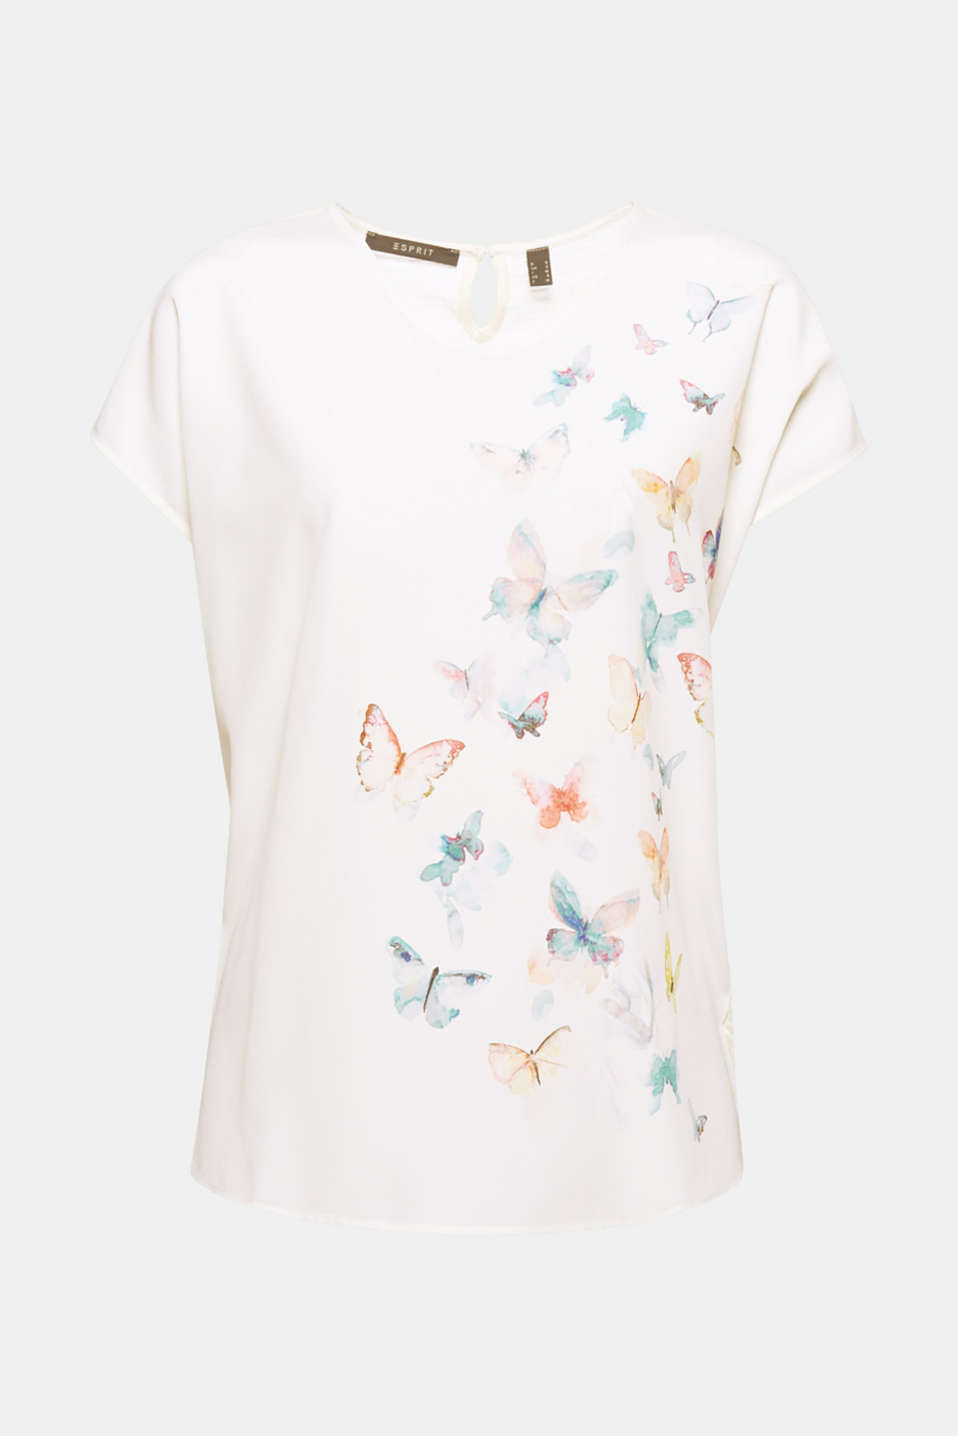 Enjoy the light and airy feel of this blouse in a flowing material mix! The striking butterfly print in a colourful watercolour look accentuates the airy styling!